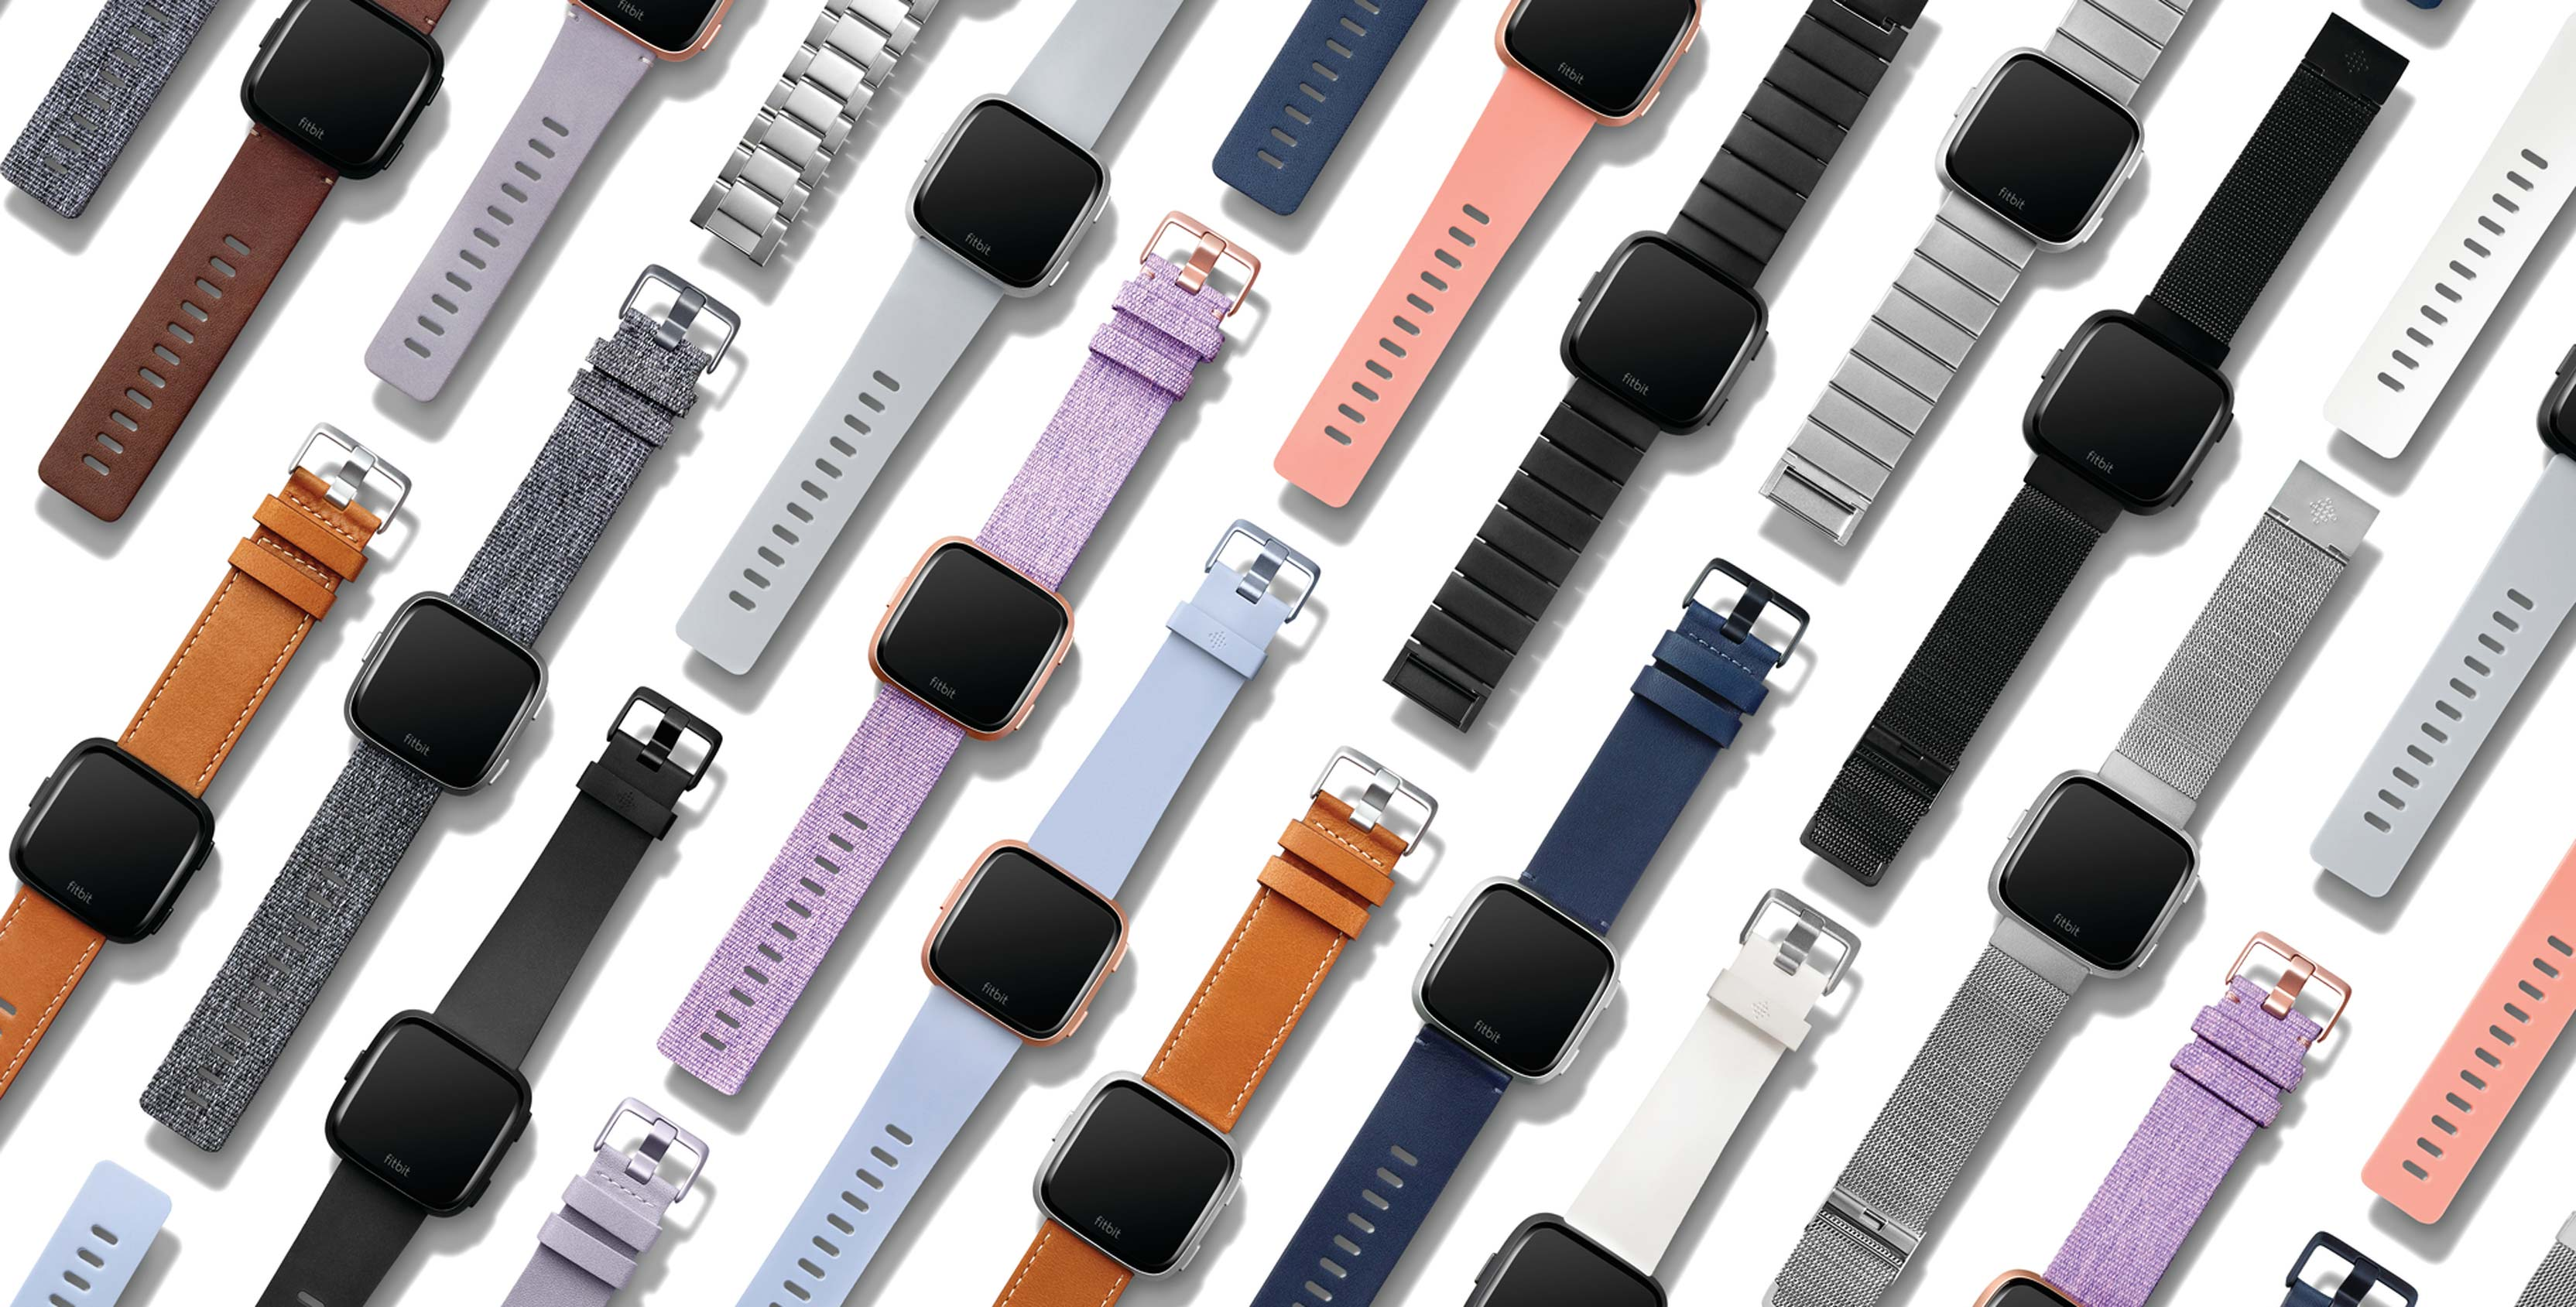 Fitbit's new Versa smartwatch family